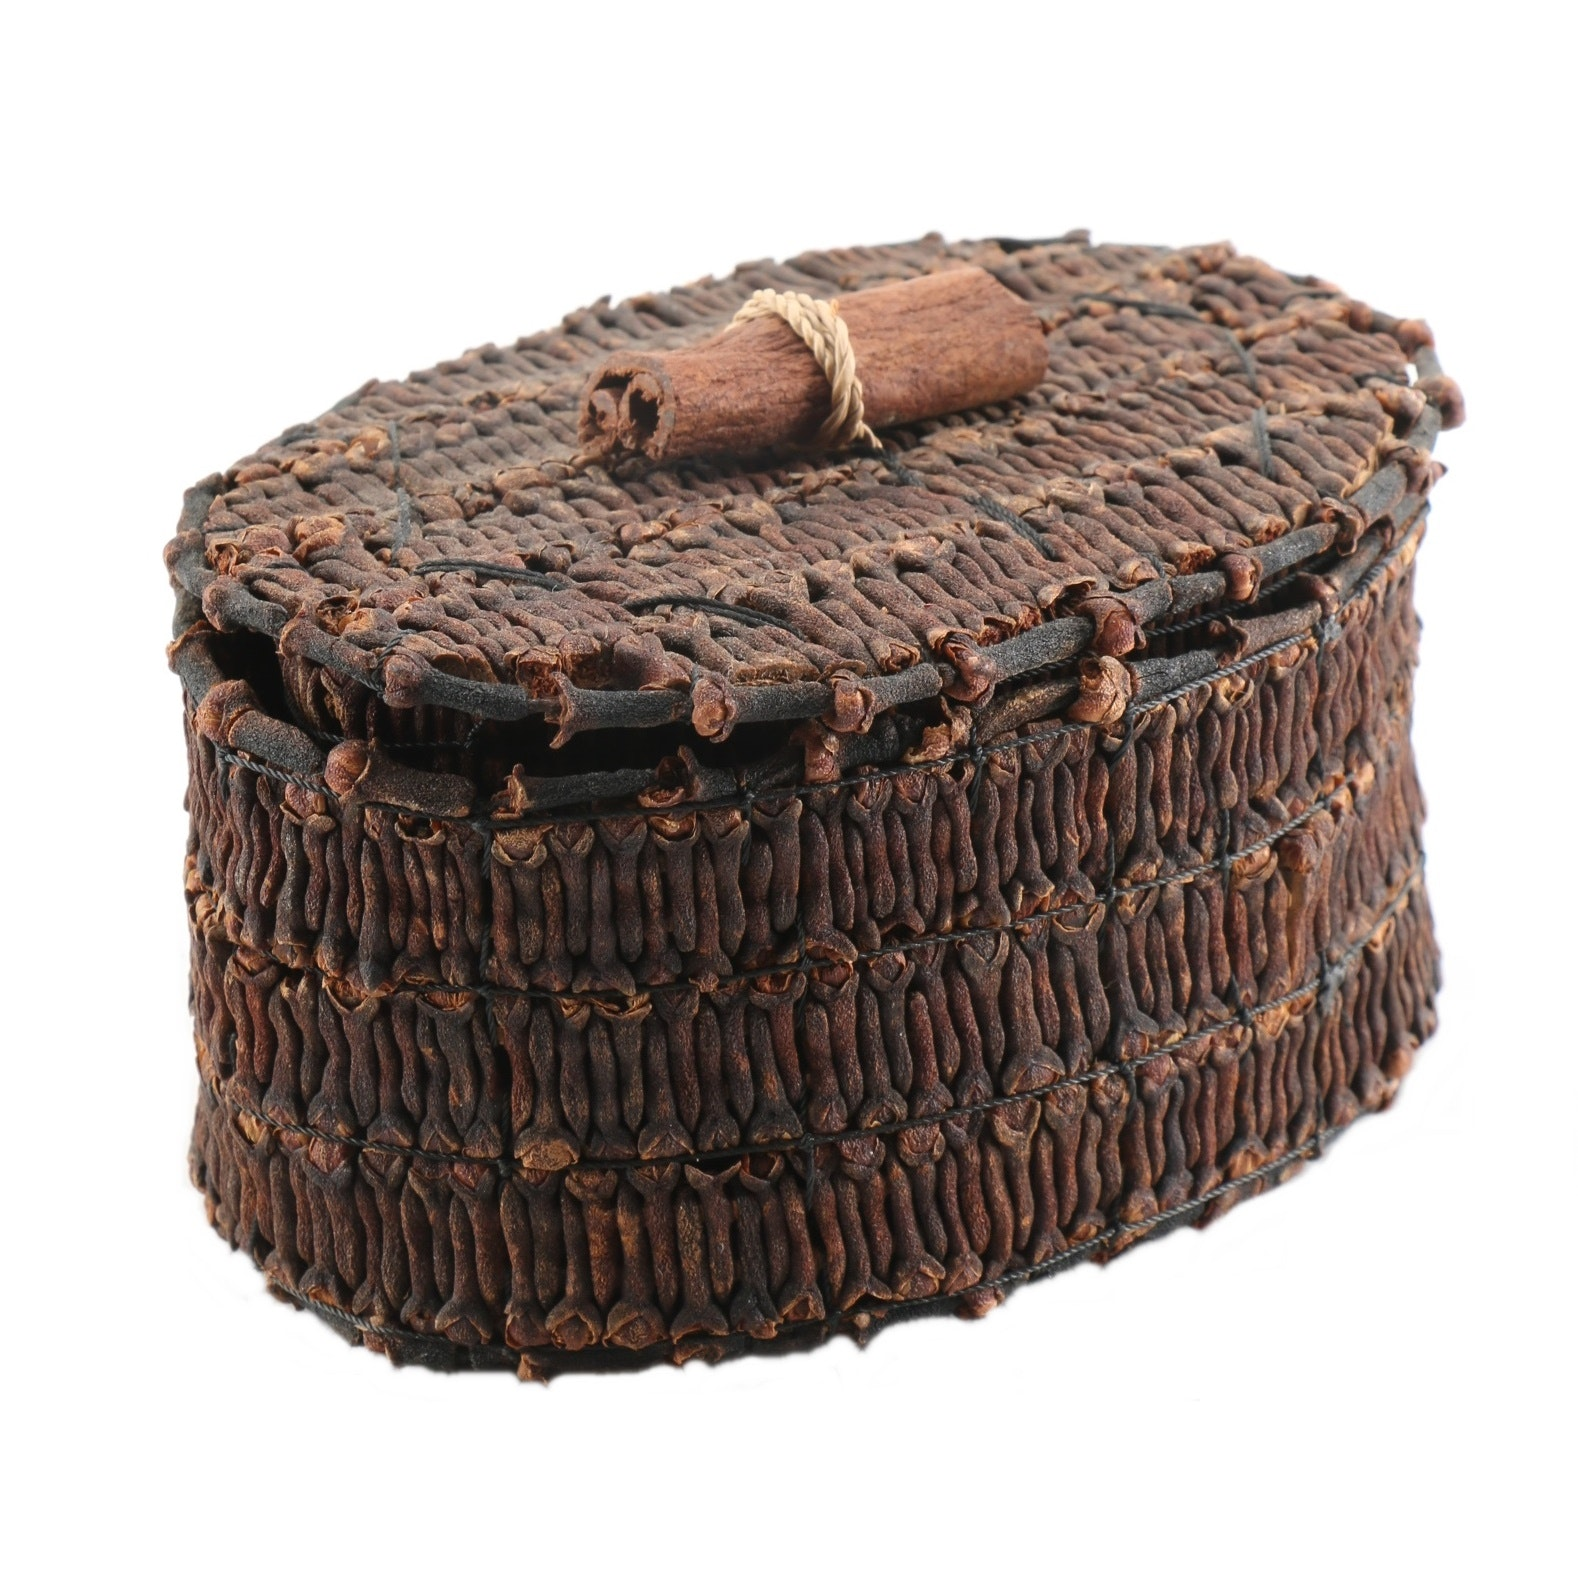 Woven Clove Basket With Lid